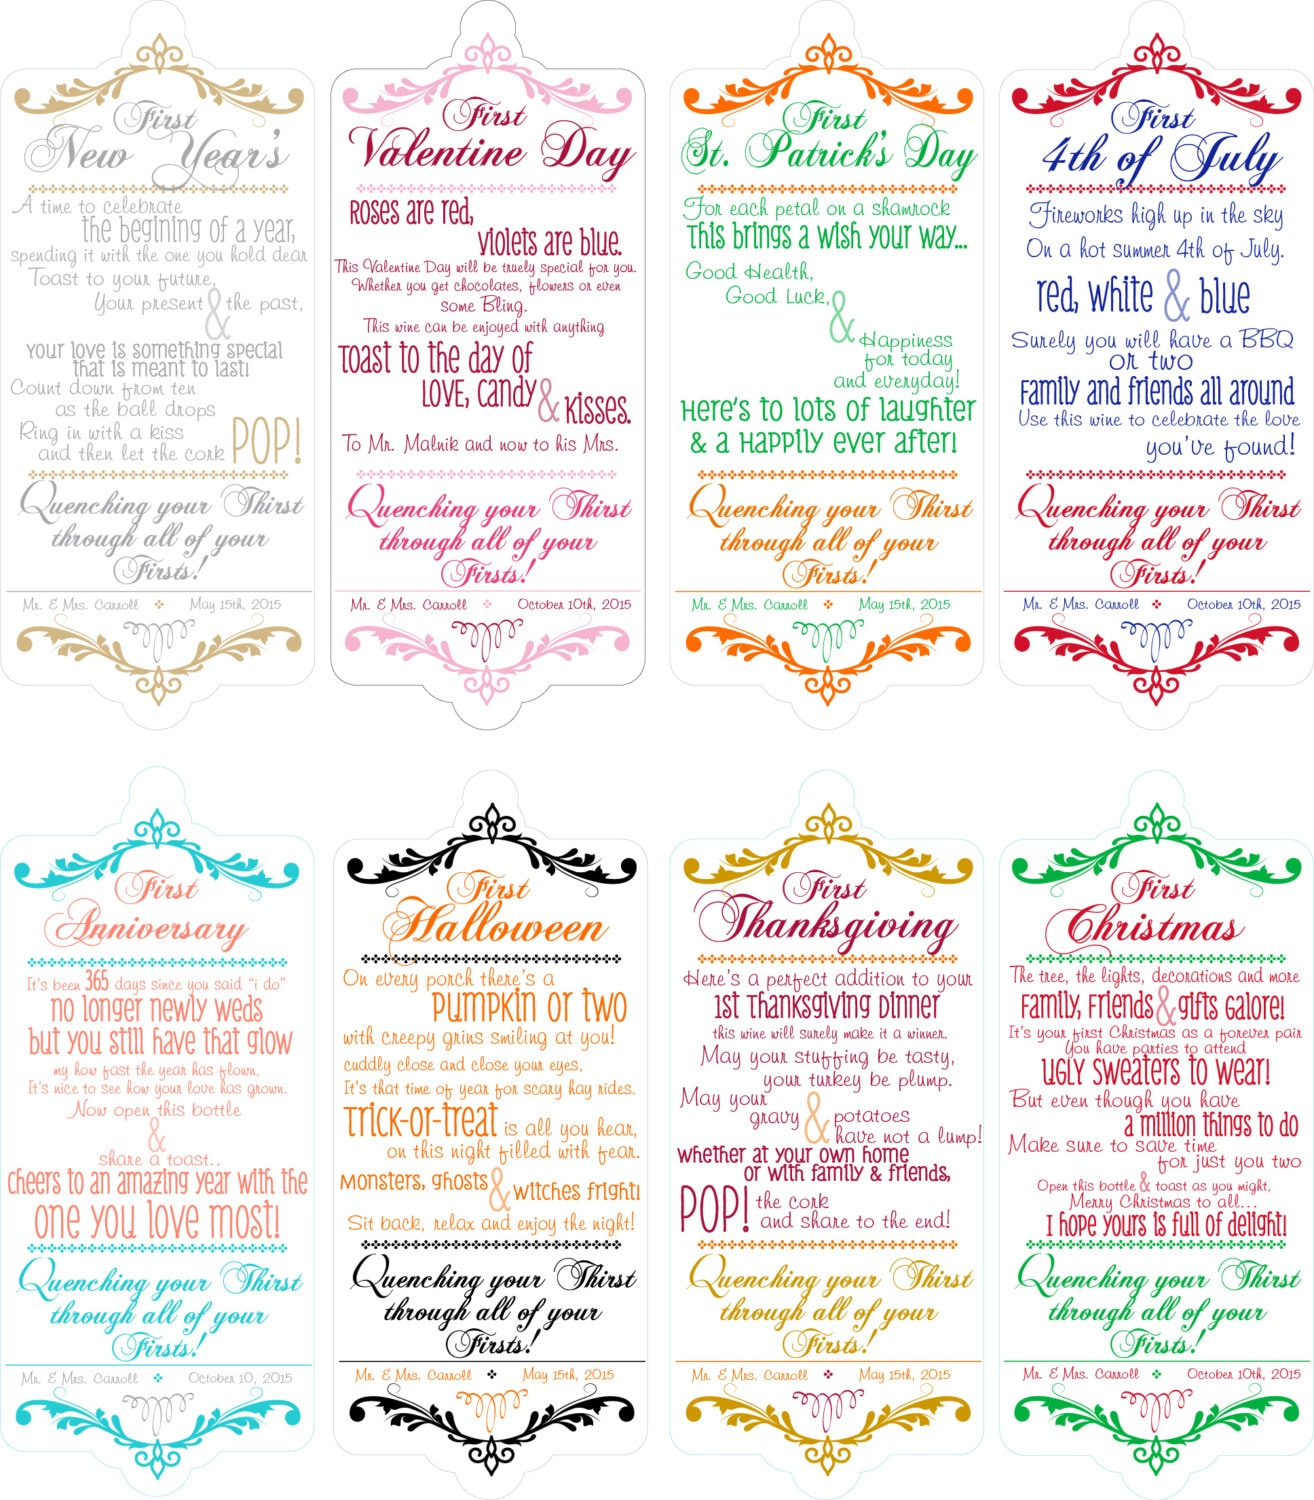 Bridal Shower Wine Poems For Wine Basket 8 HOLIDAY THEMED